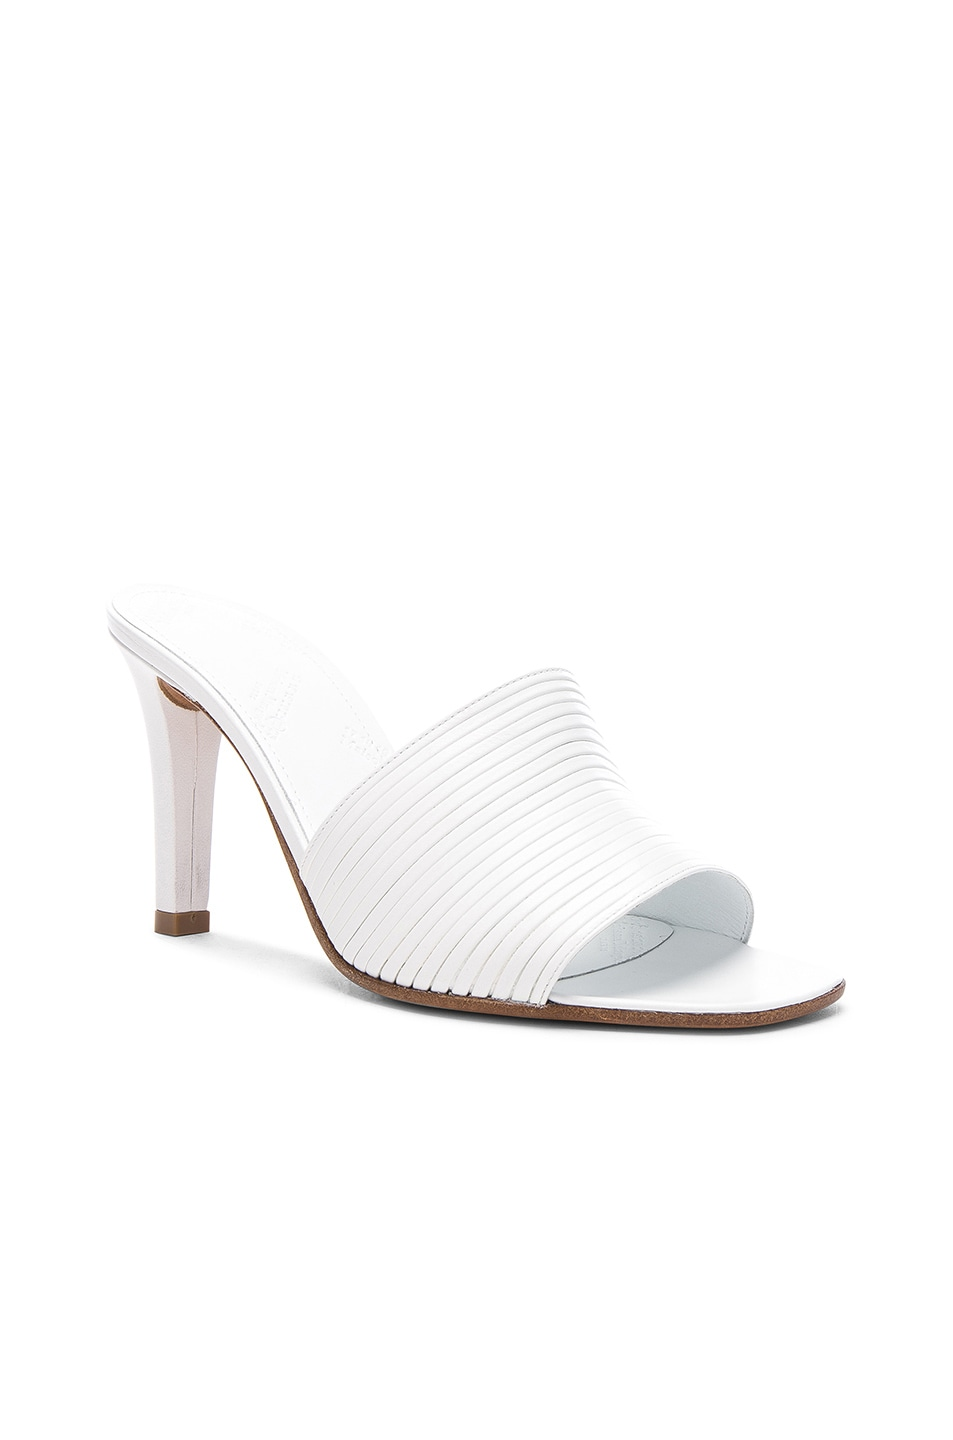 Image 2 of Maison Margiela Leather Heels in White